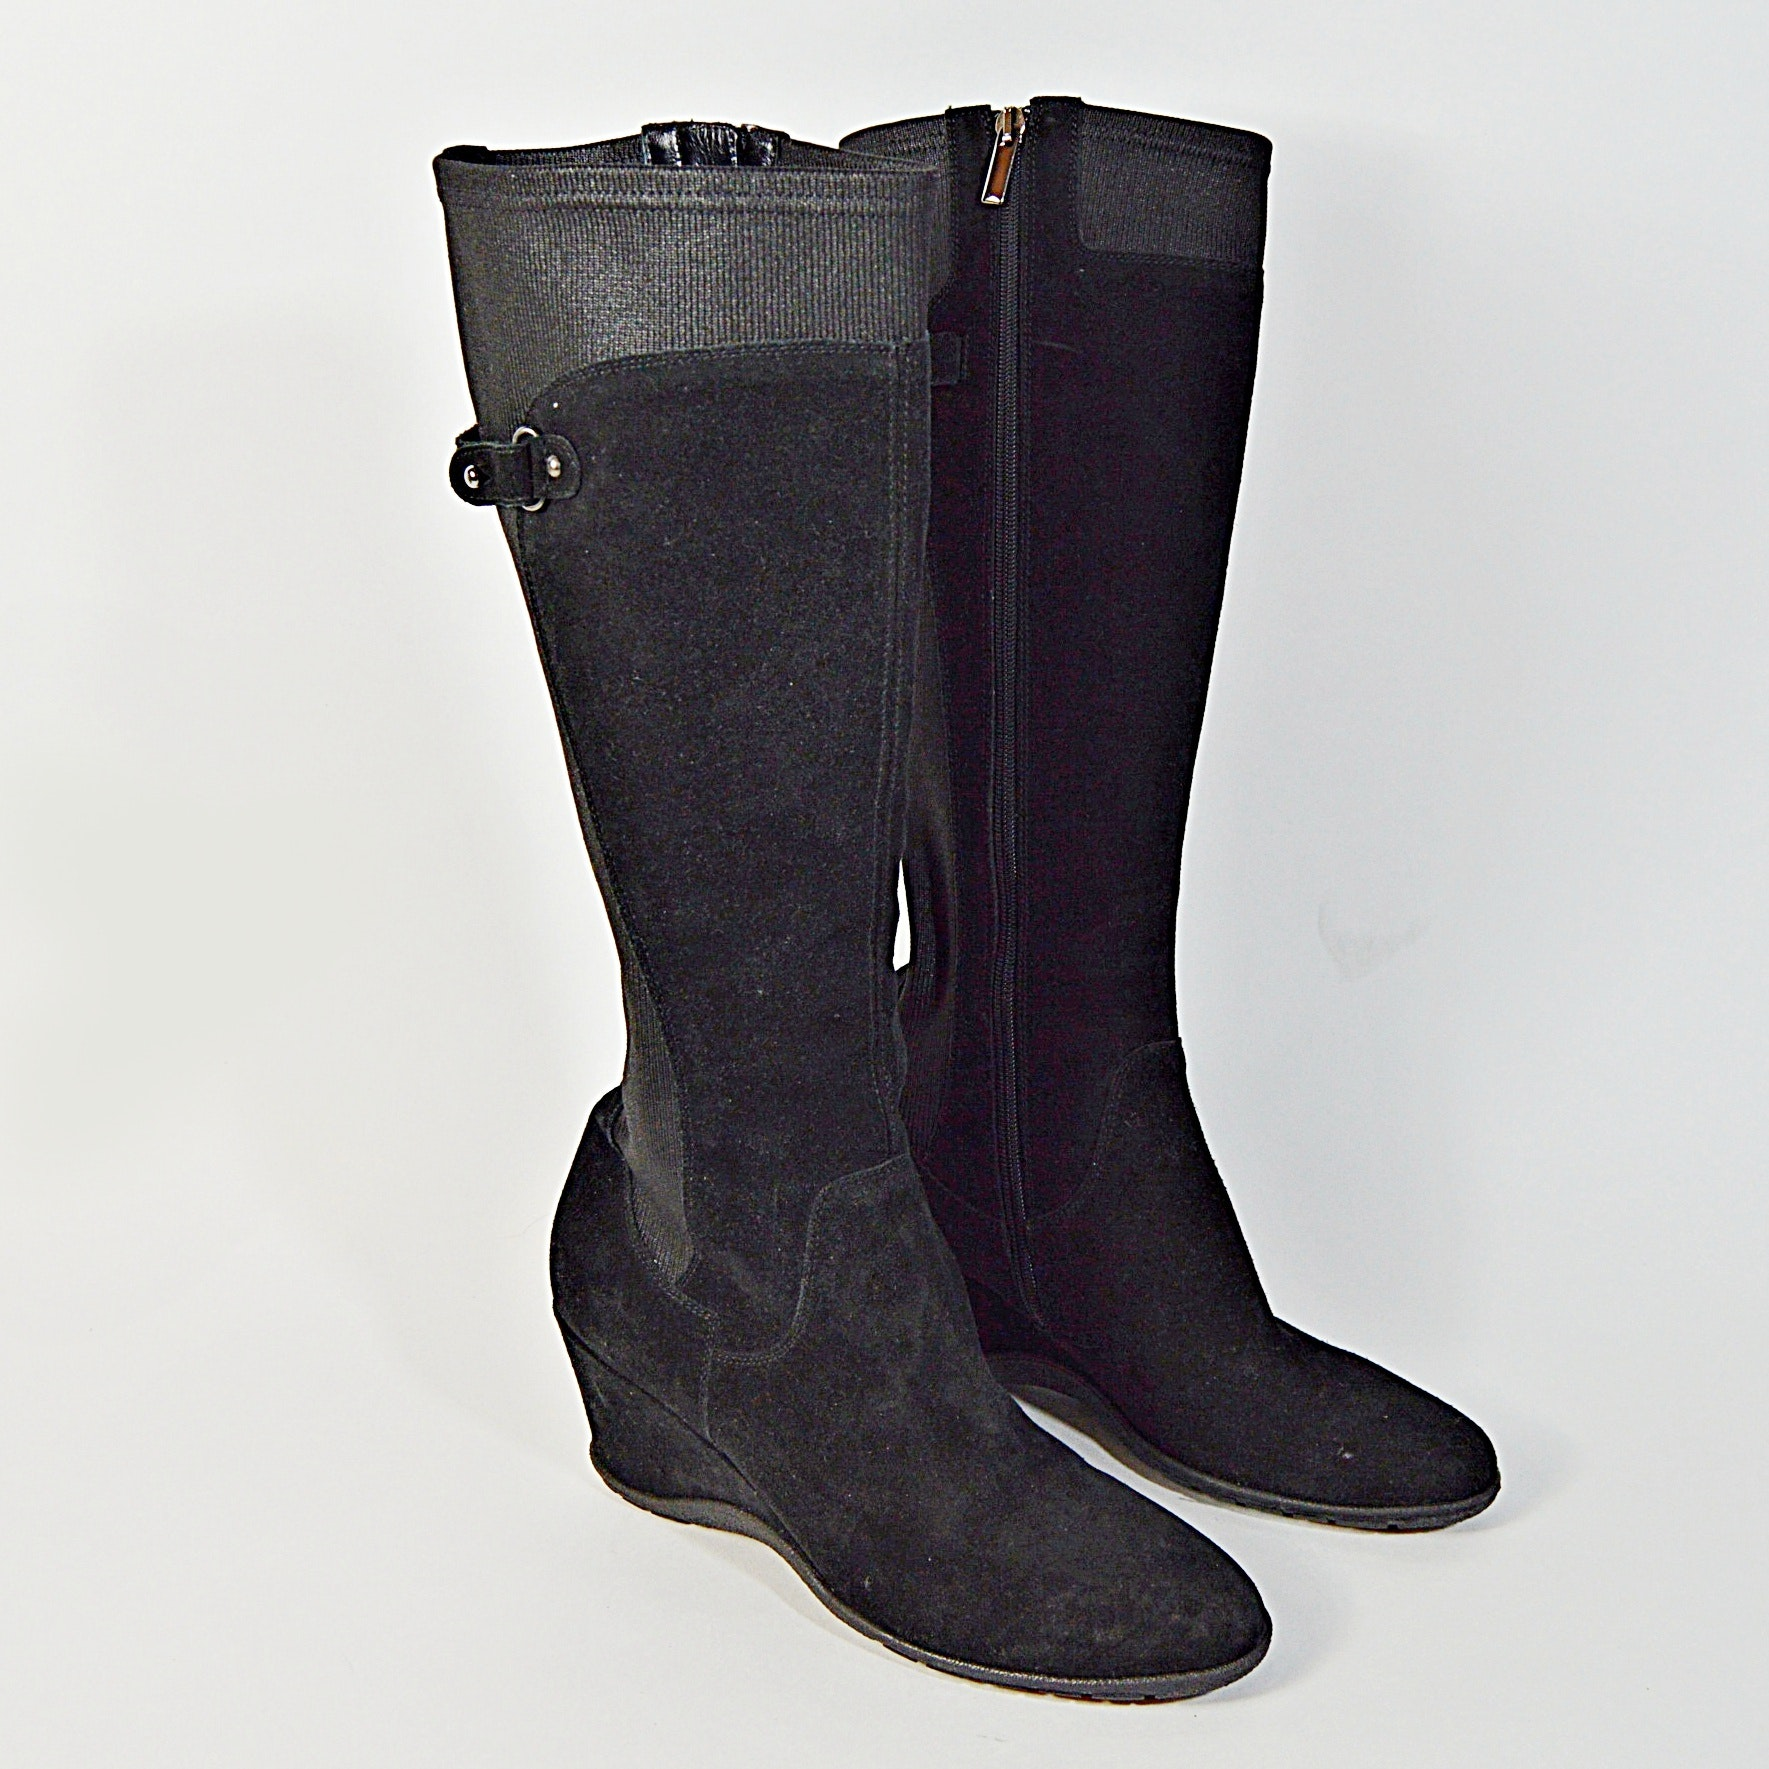 Aquatalia by Marvin K. Black Leather Boots, 10M